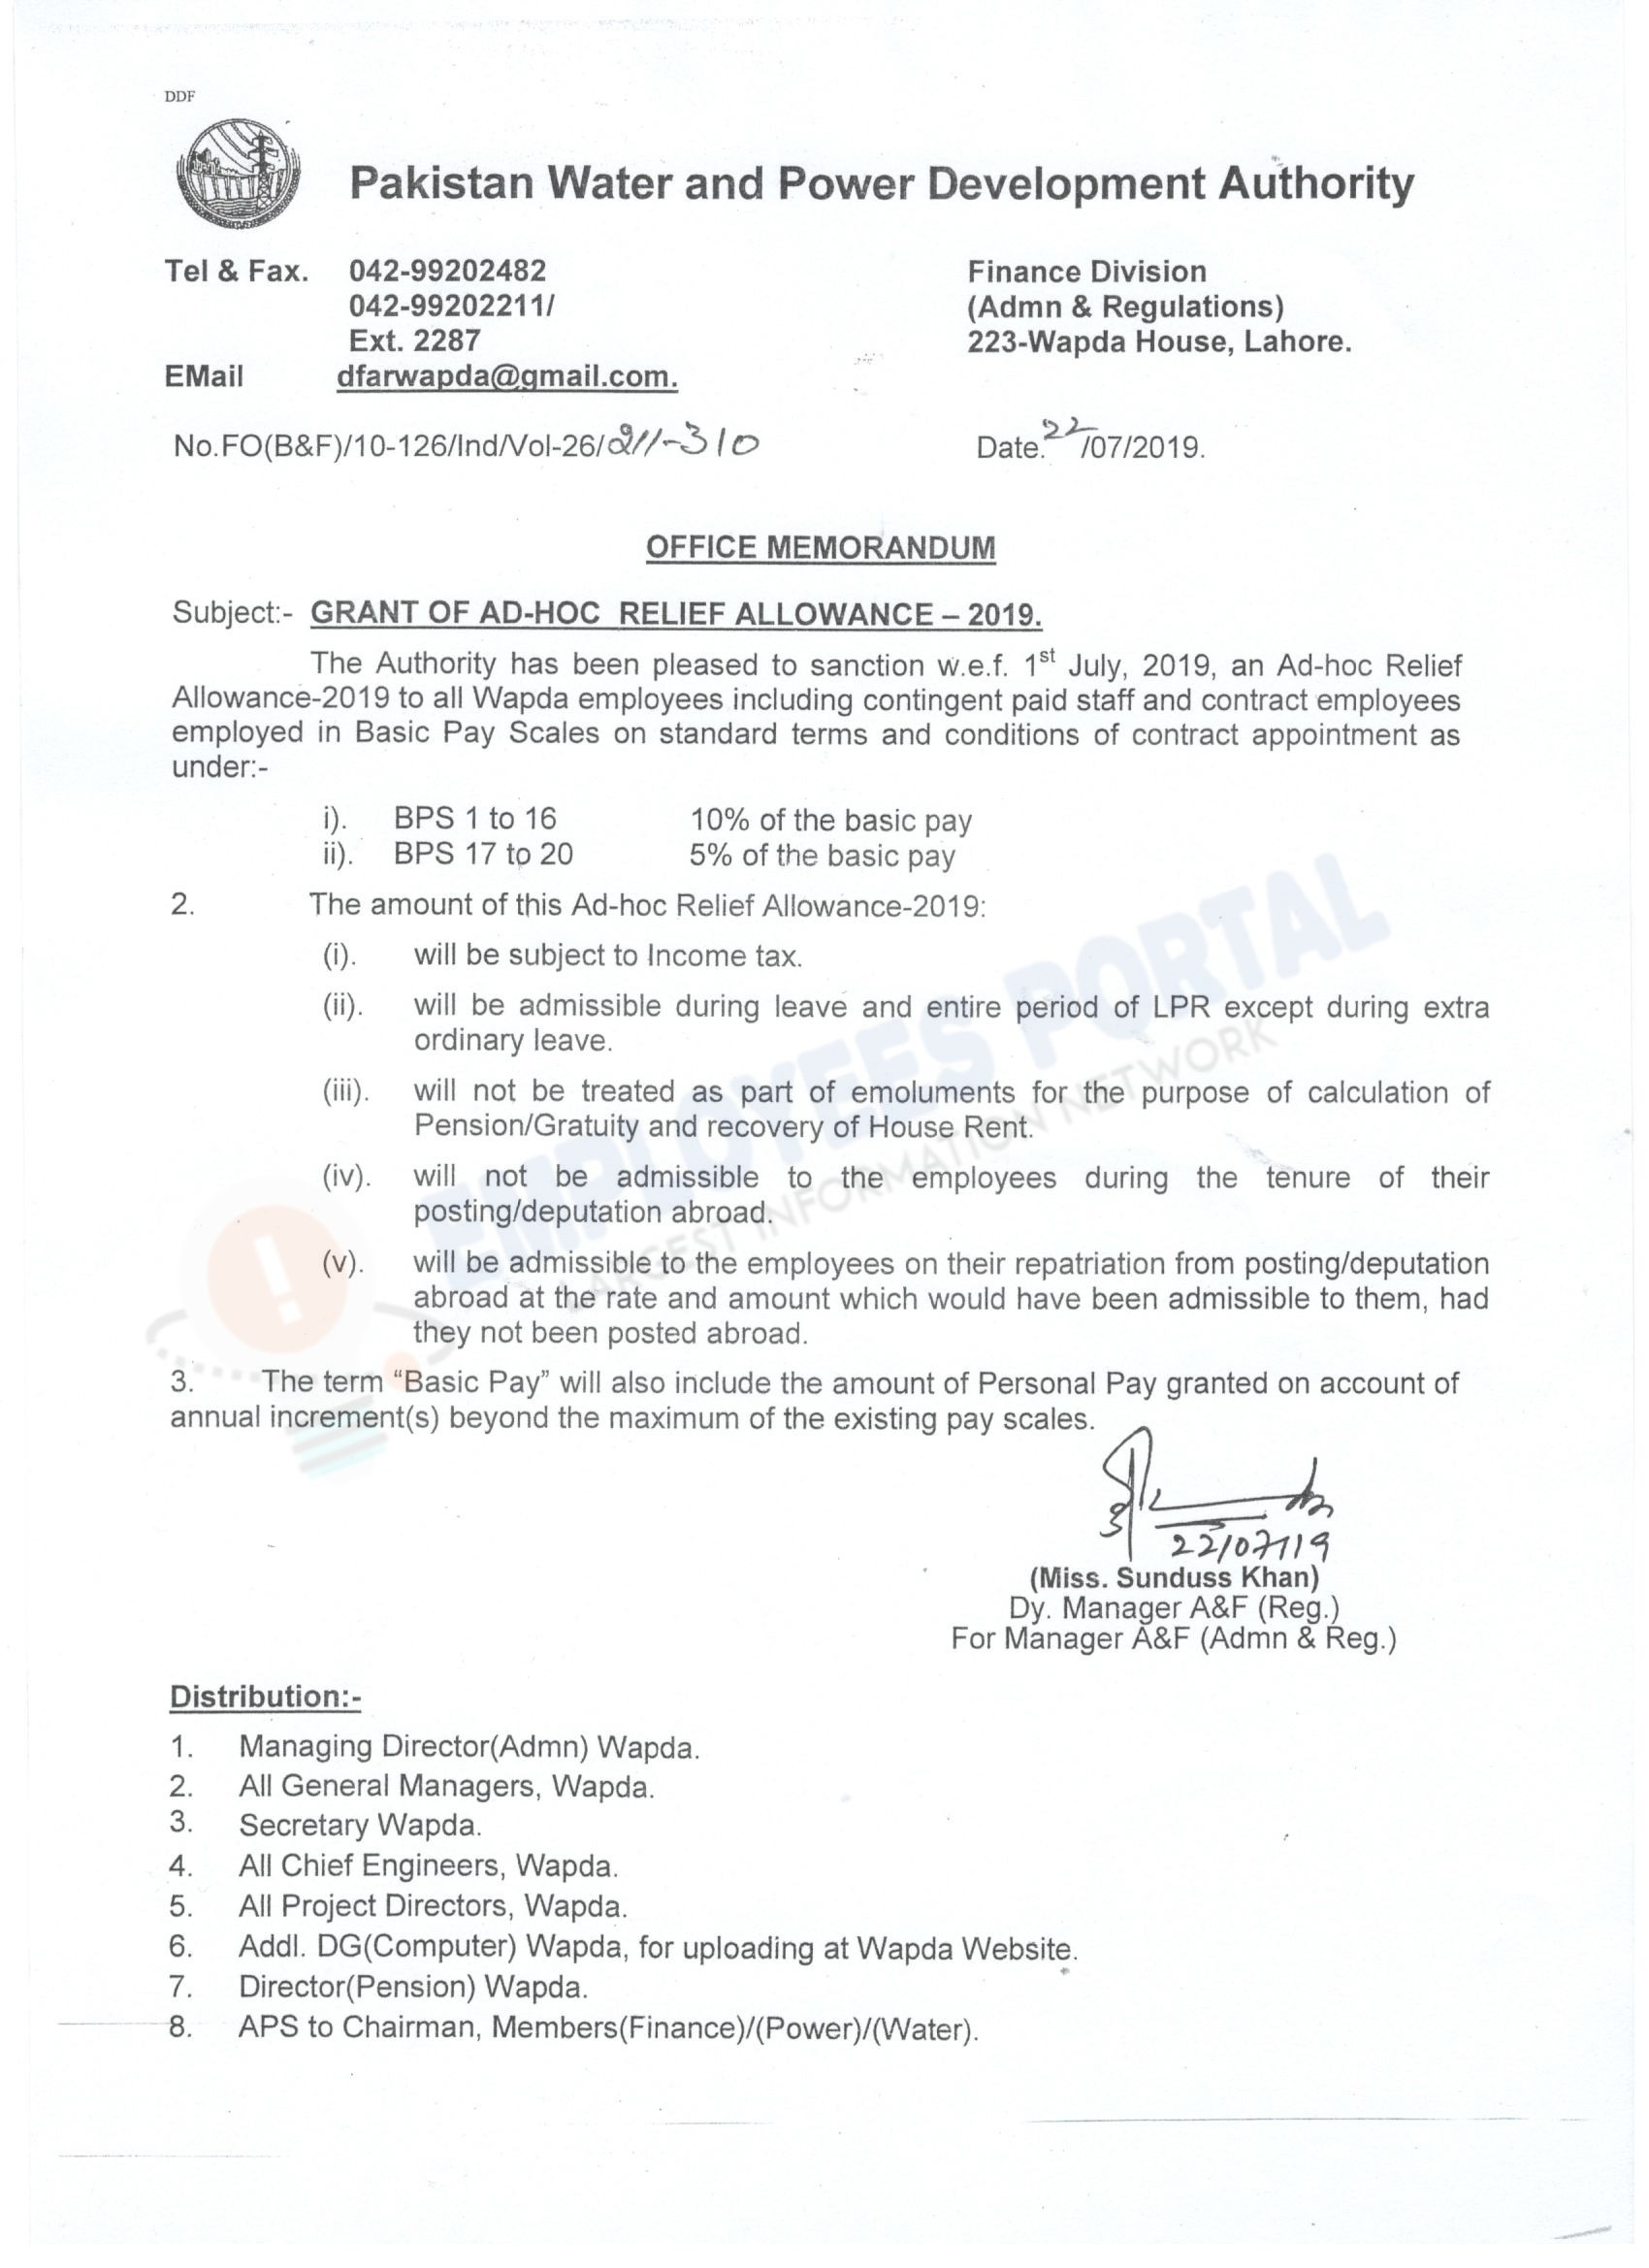 WAPDA Adhoc Relief Allowance 2019